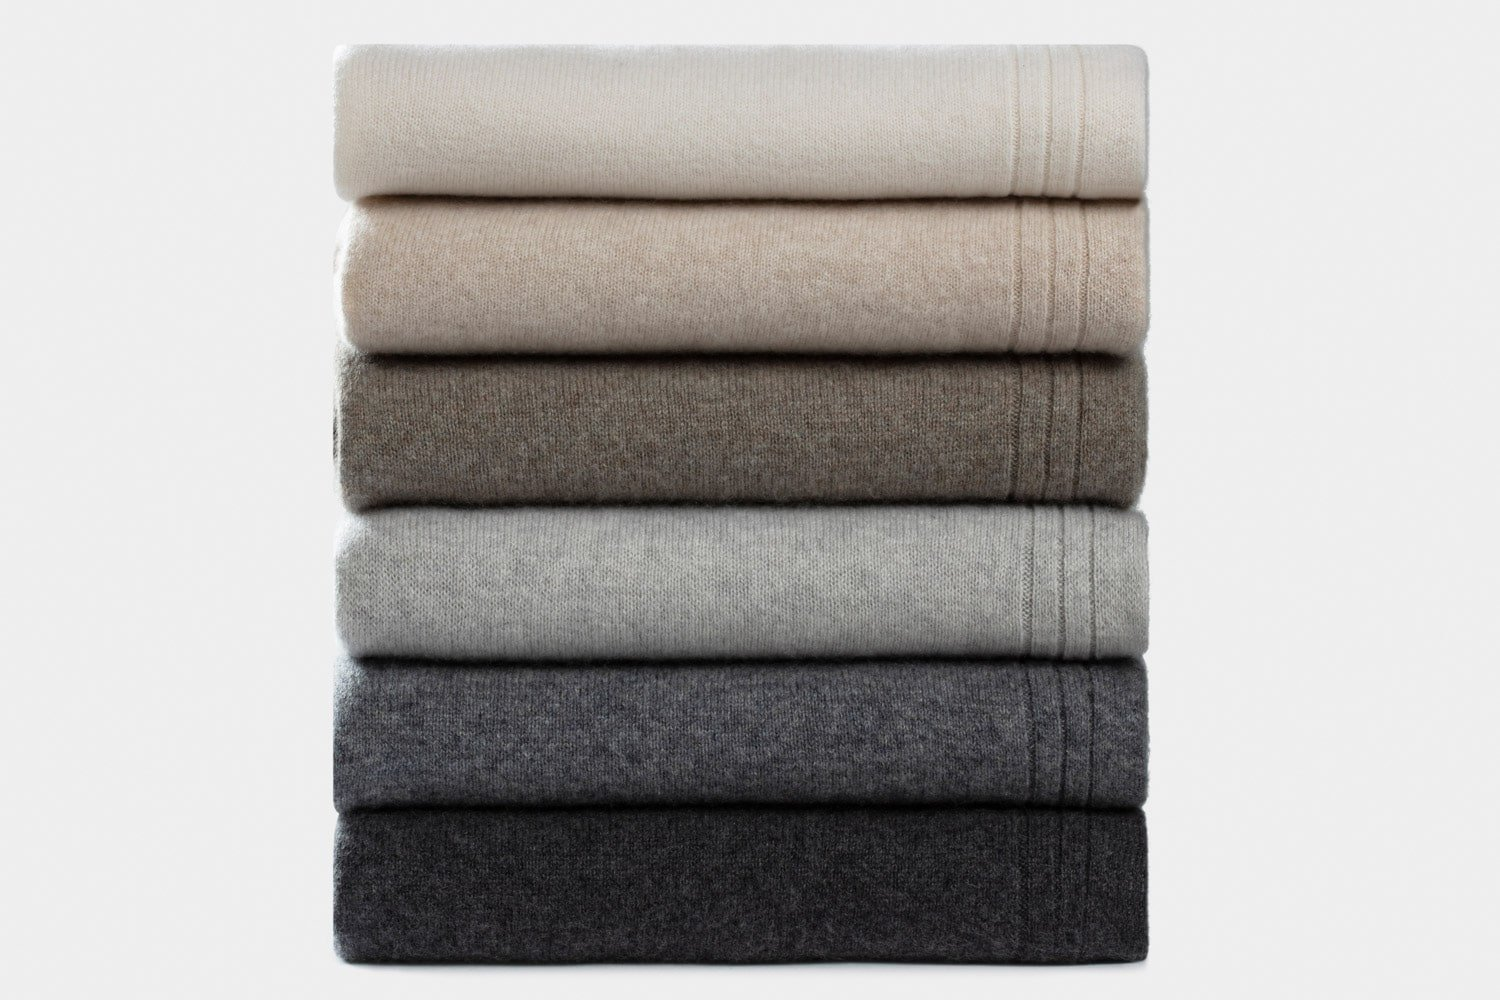 italian cashmere jersey throws